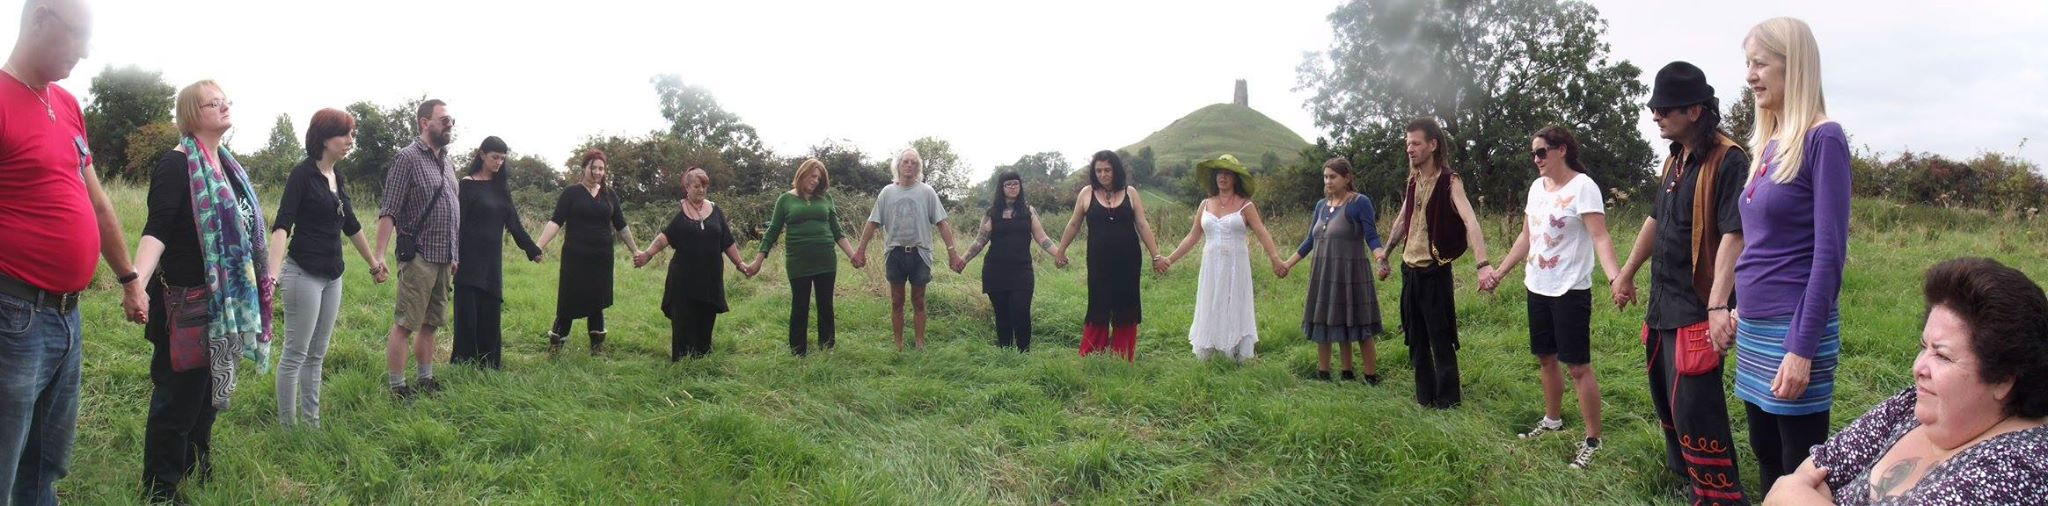 world goddess day glastonbury